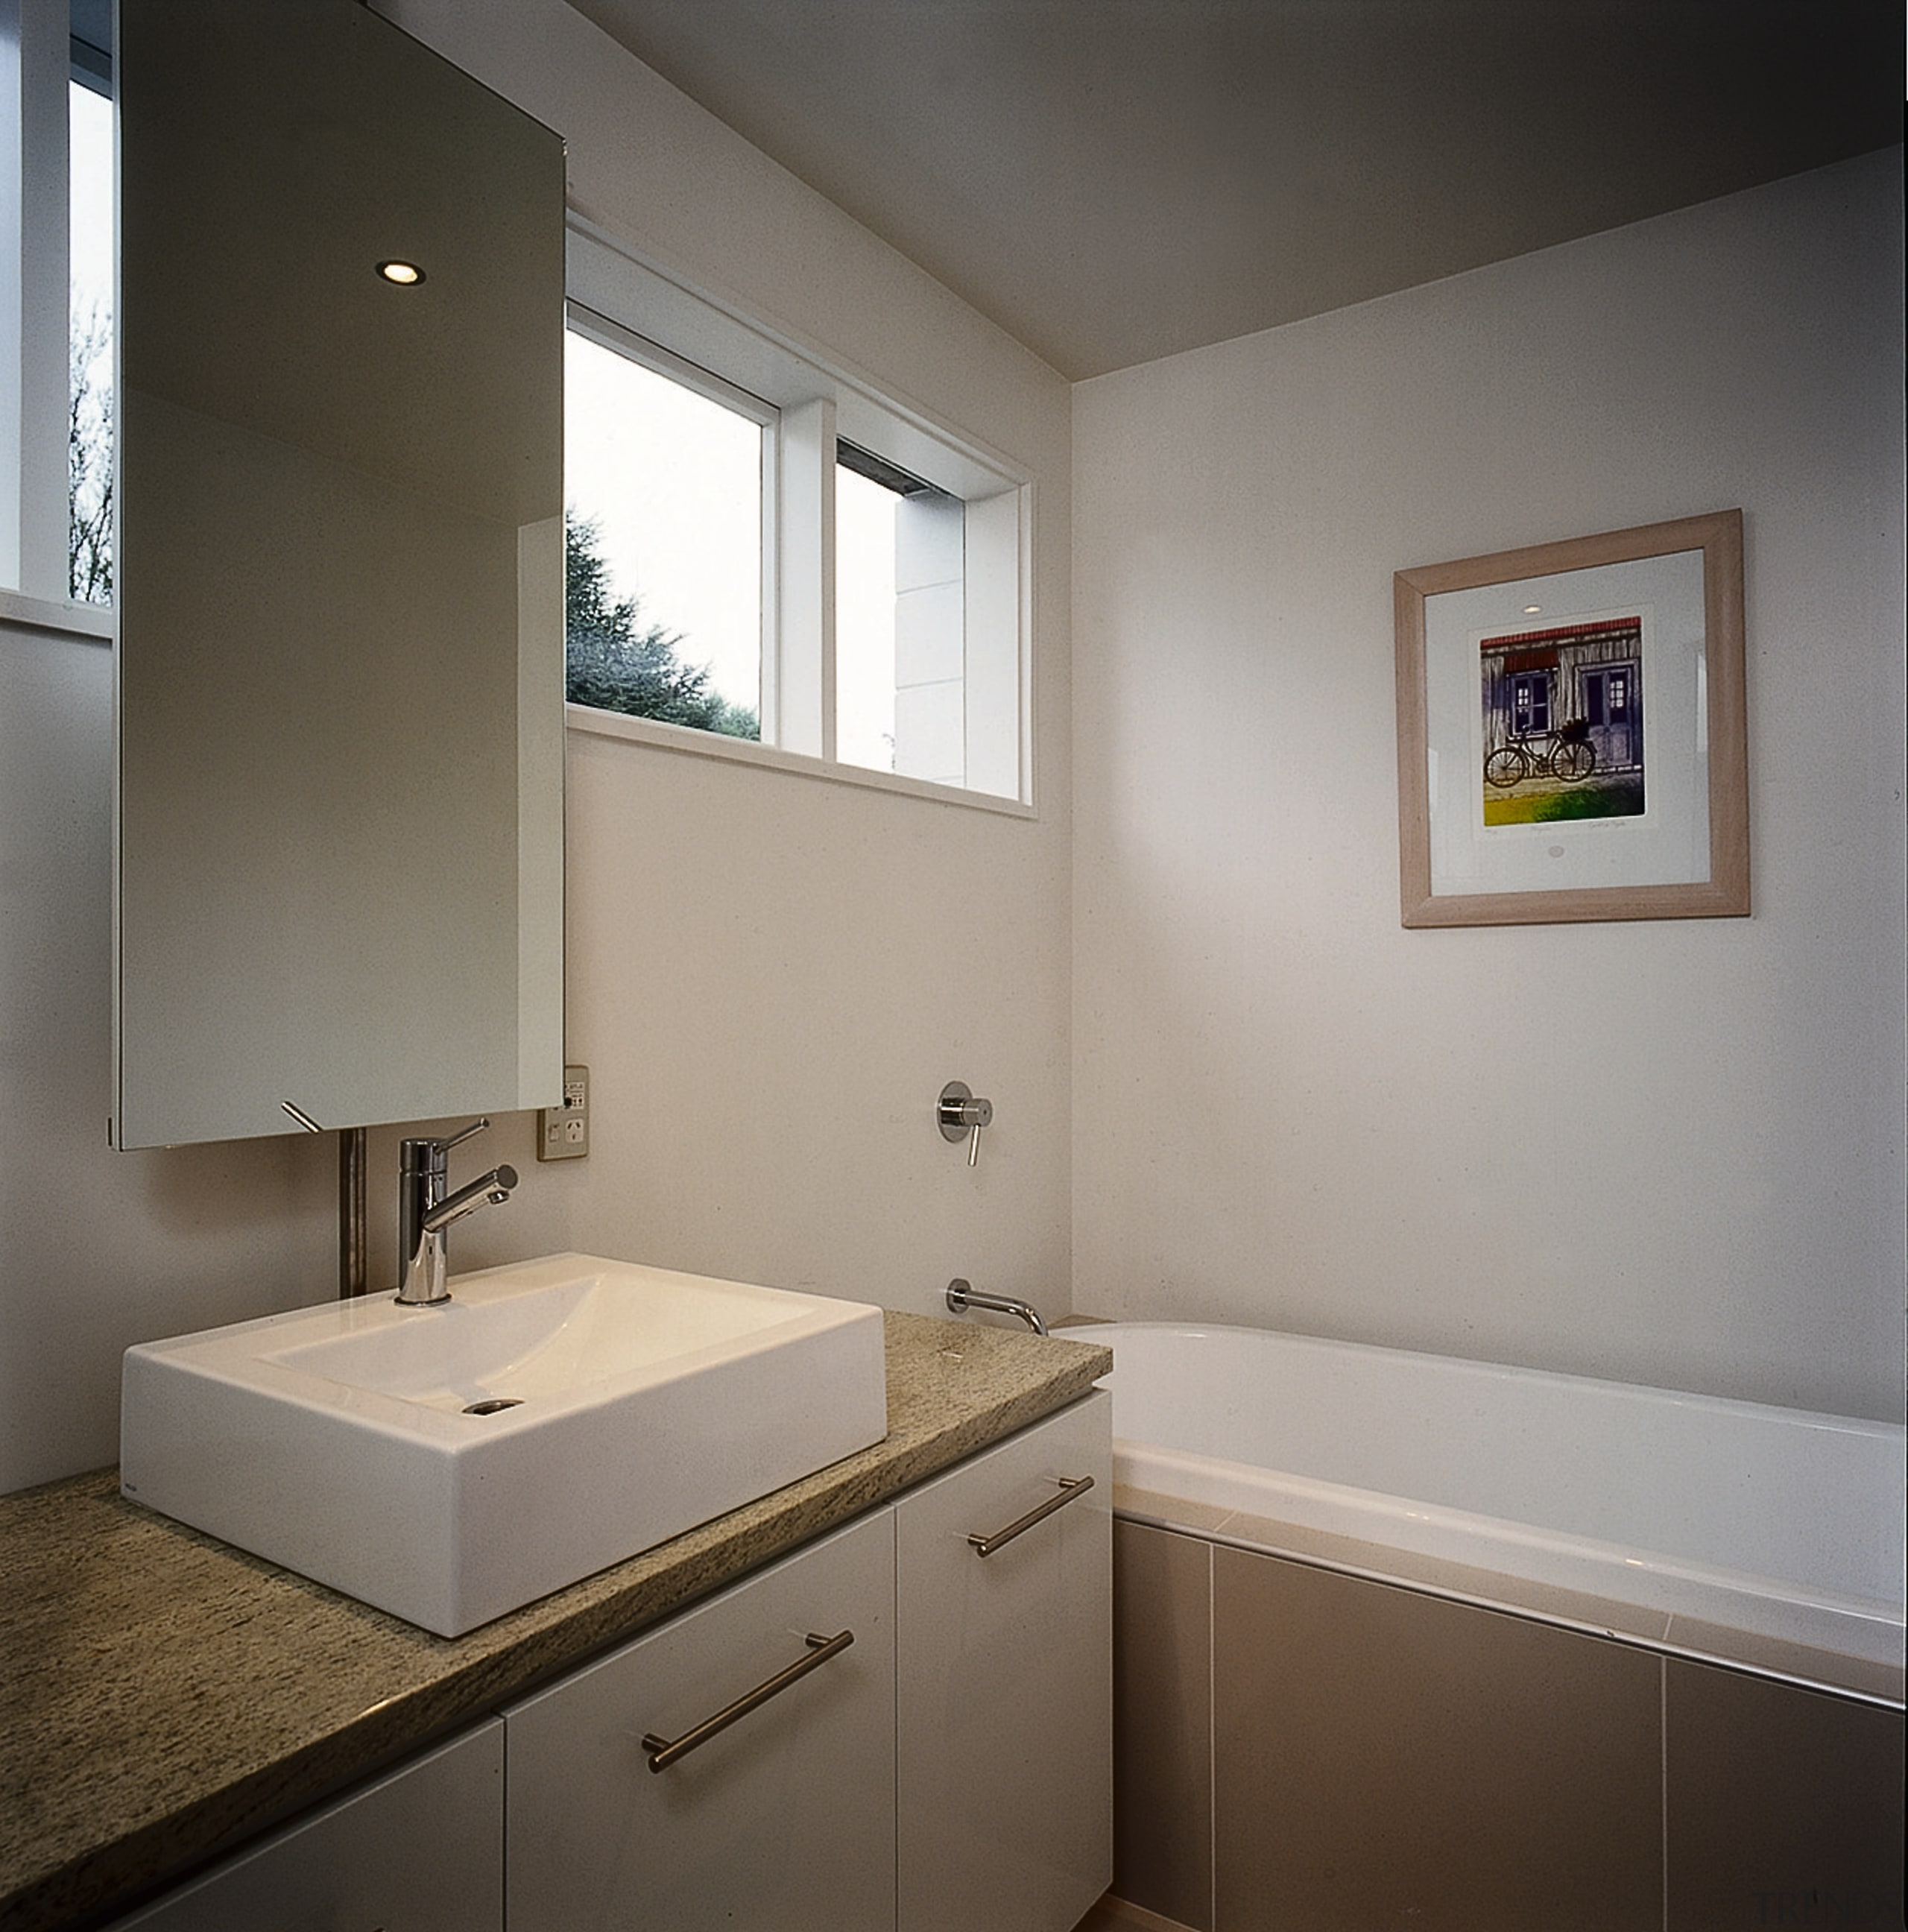 The detail shot of a bathroom showing the architecture, bathroom, bathroom accessory, daylighting, home, interior design, property, real estate, room, sink, window, gray